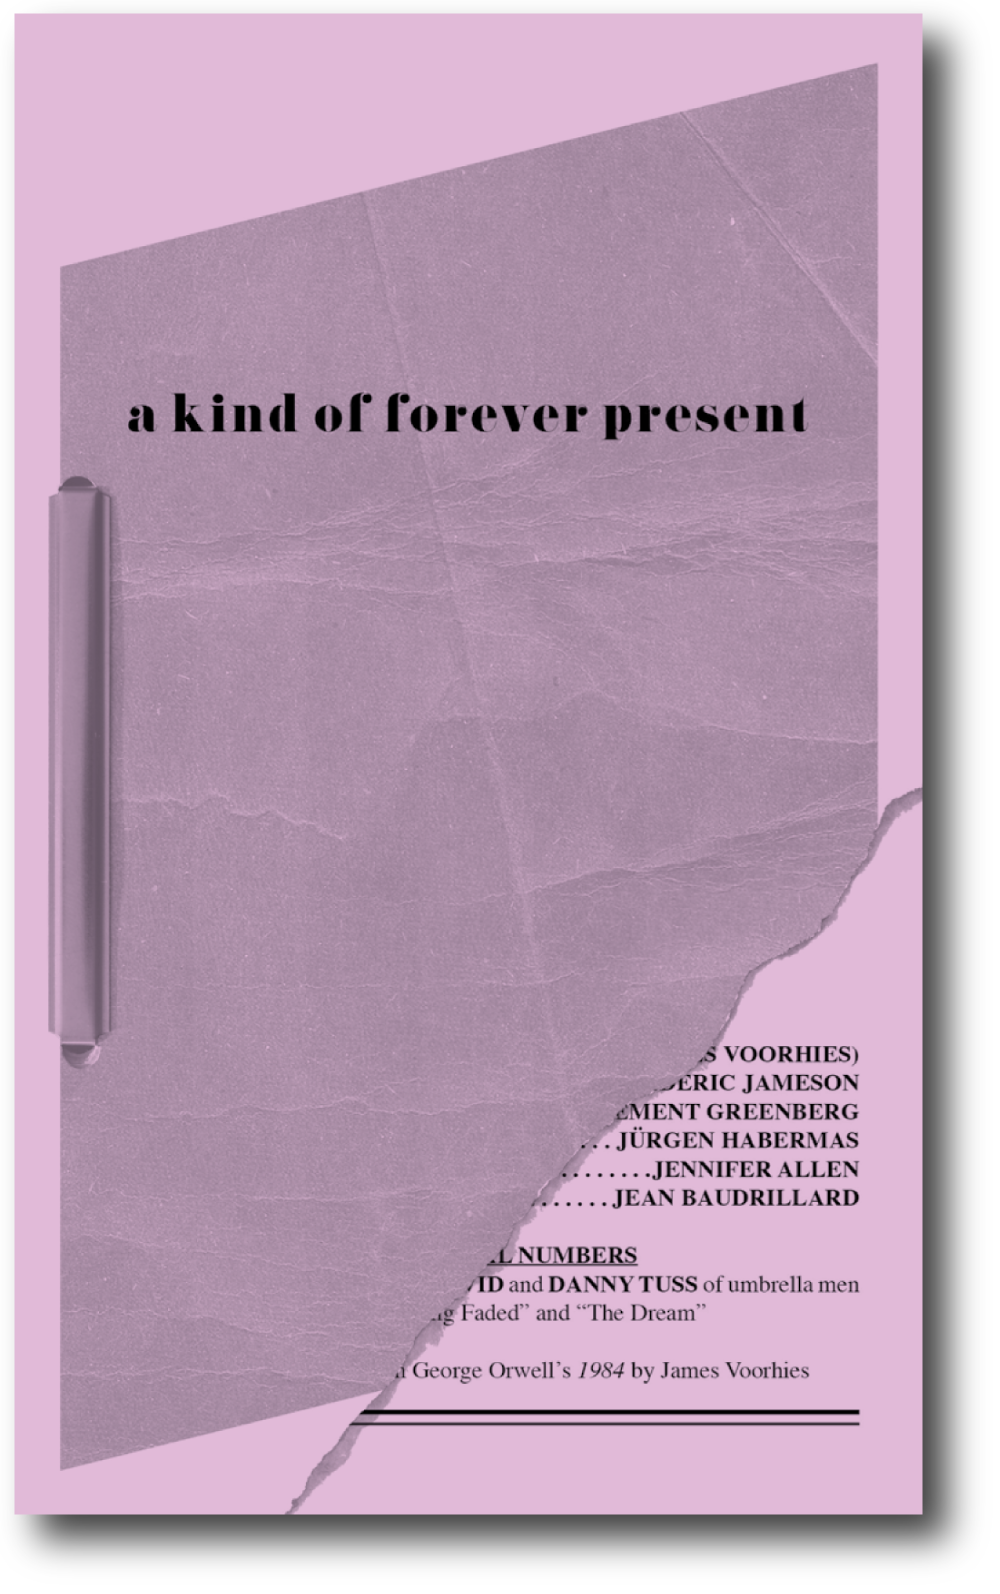 a kind of forever present , published by Bureau for Open Culture, 2011; designed by Nate Padavick;32 pages;8.25 x 5 inches